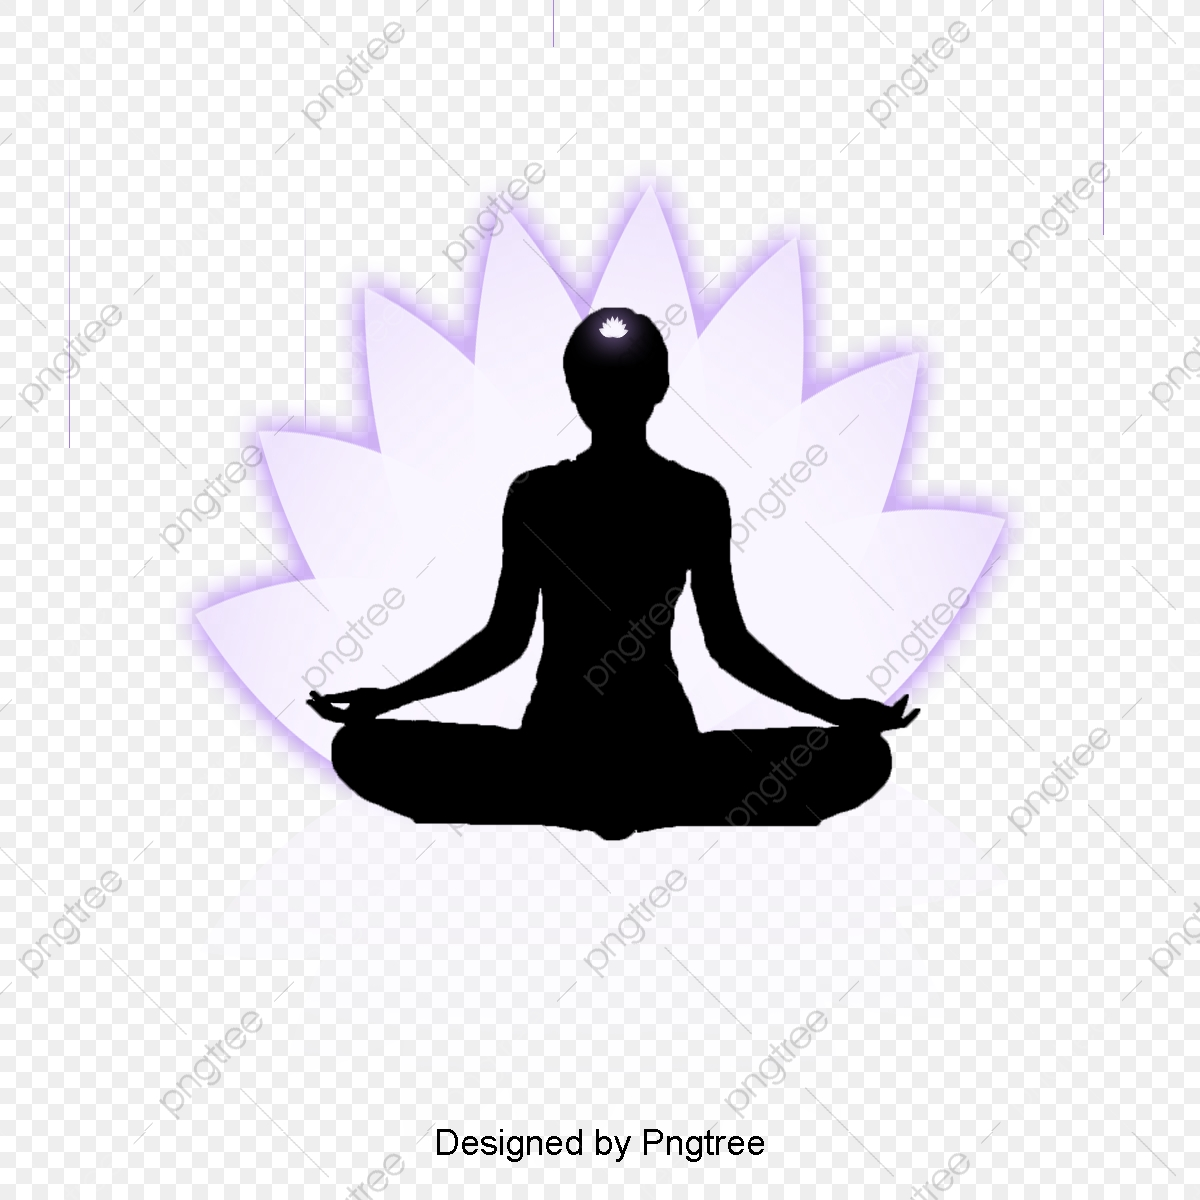 Simple Cartoon Beauty Yoga Decorative Pattern Yoga Physical Fitness Sitting Png Transparent Clipart Image And Psd File For Free Download